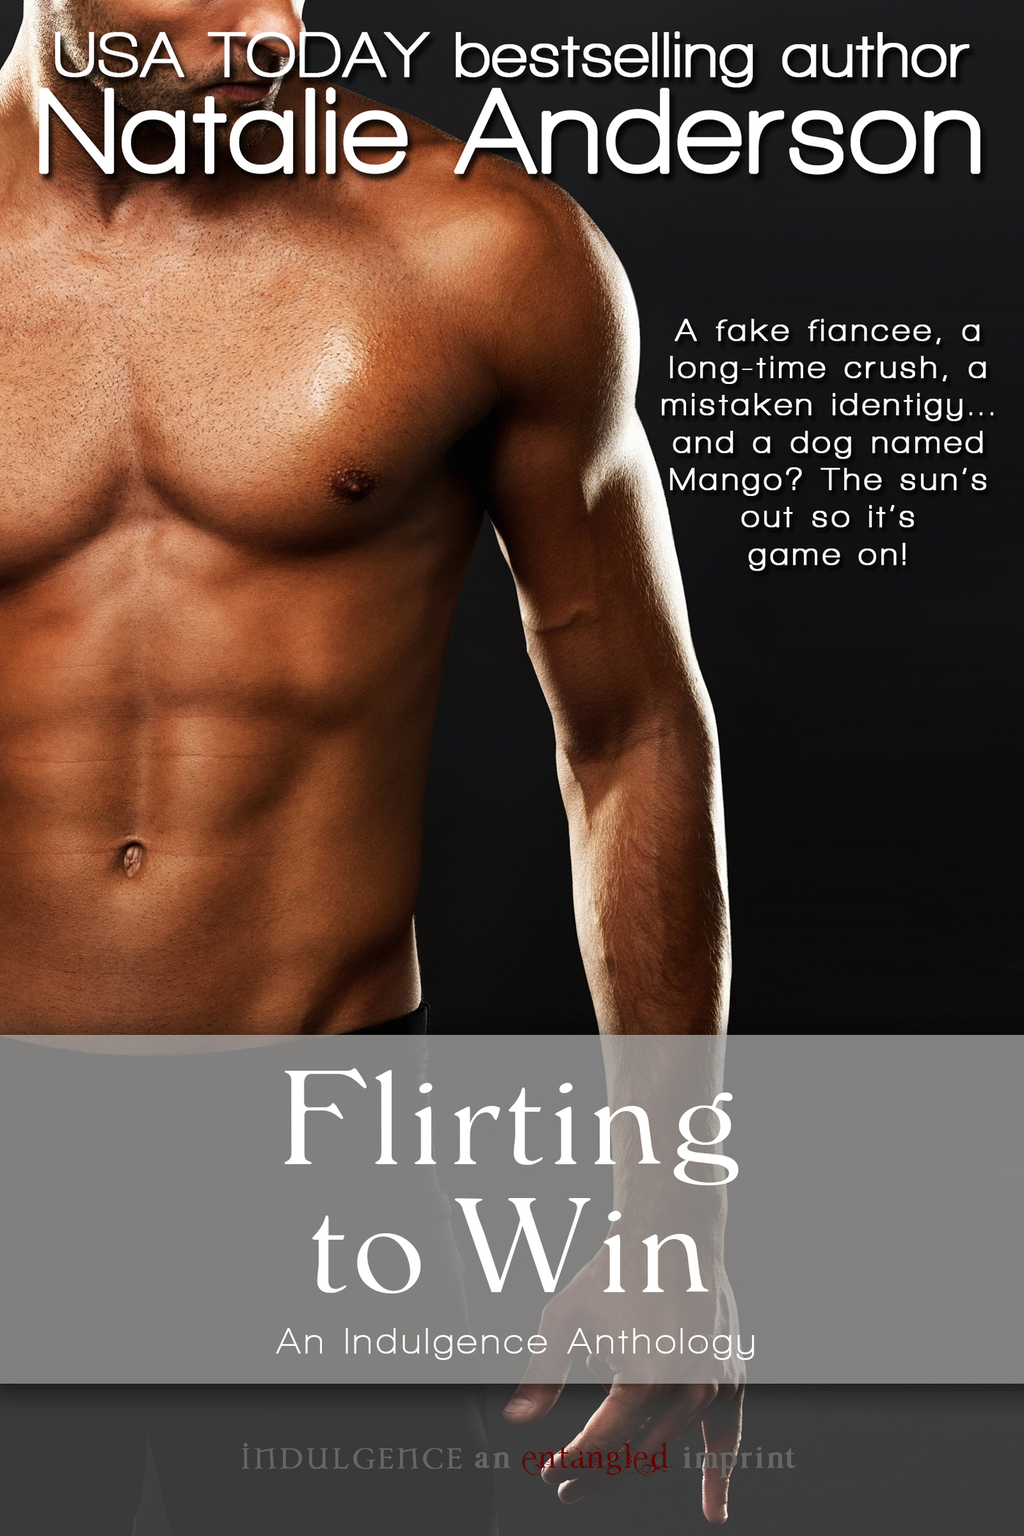 Flirting to Win